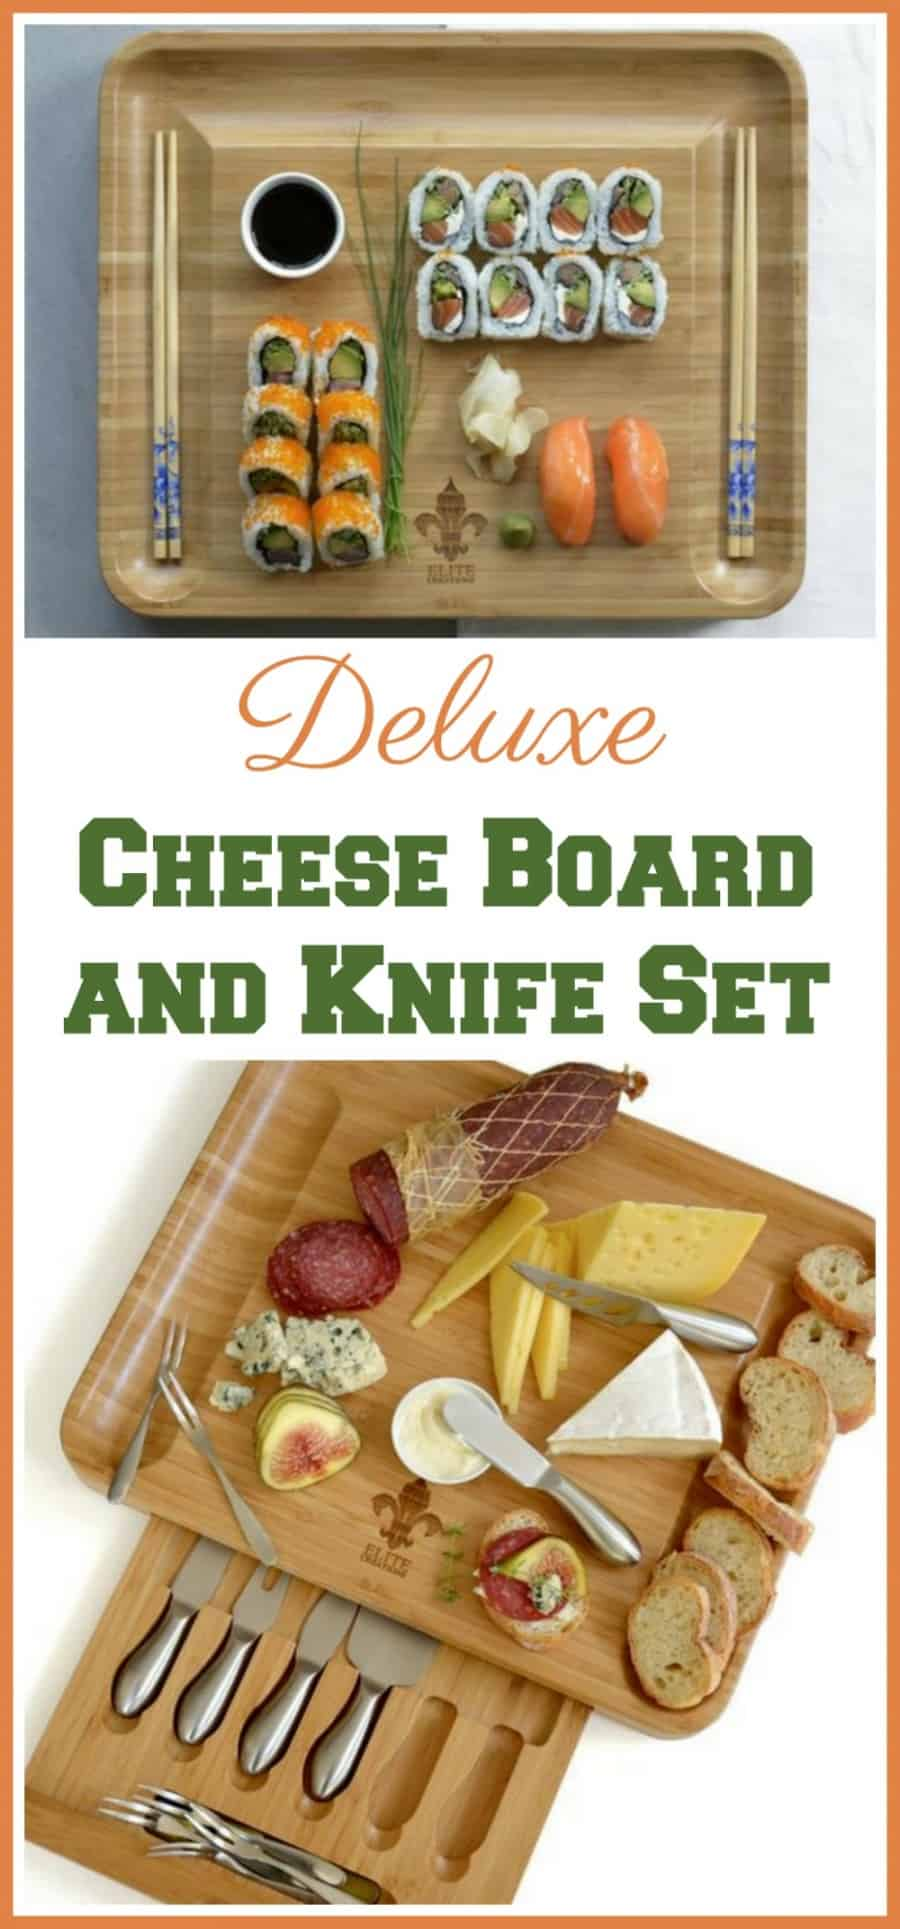 Deluxe Cheese Board and Knife Set